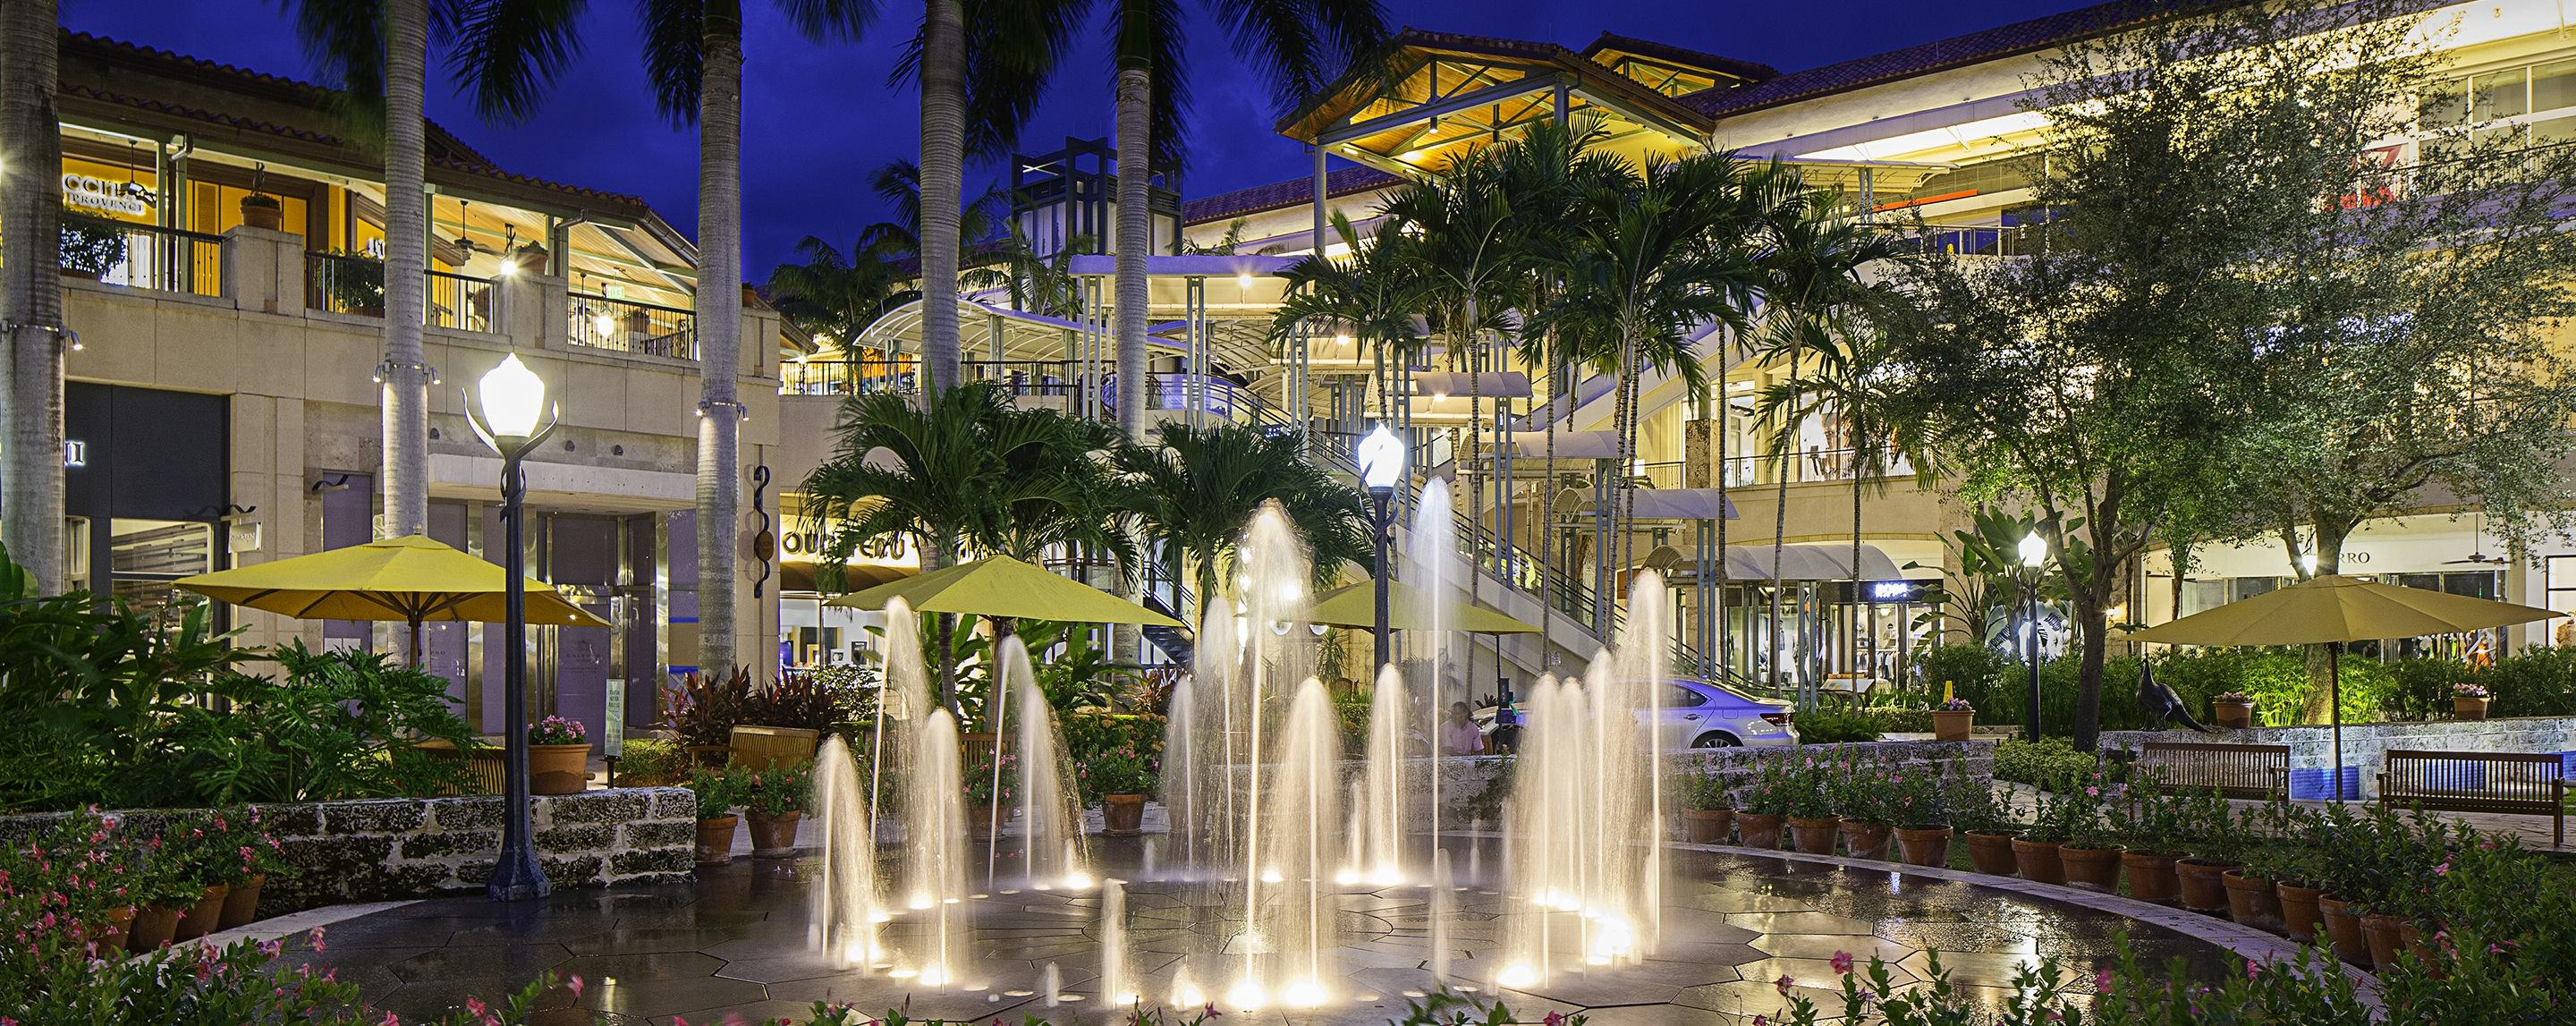 A fountain illuminated by lampposts in front of a shopping center. There are yellow umbrellas behind